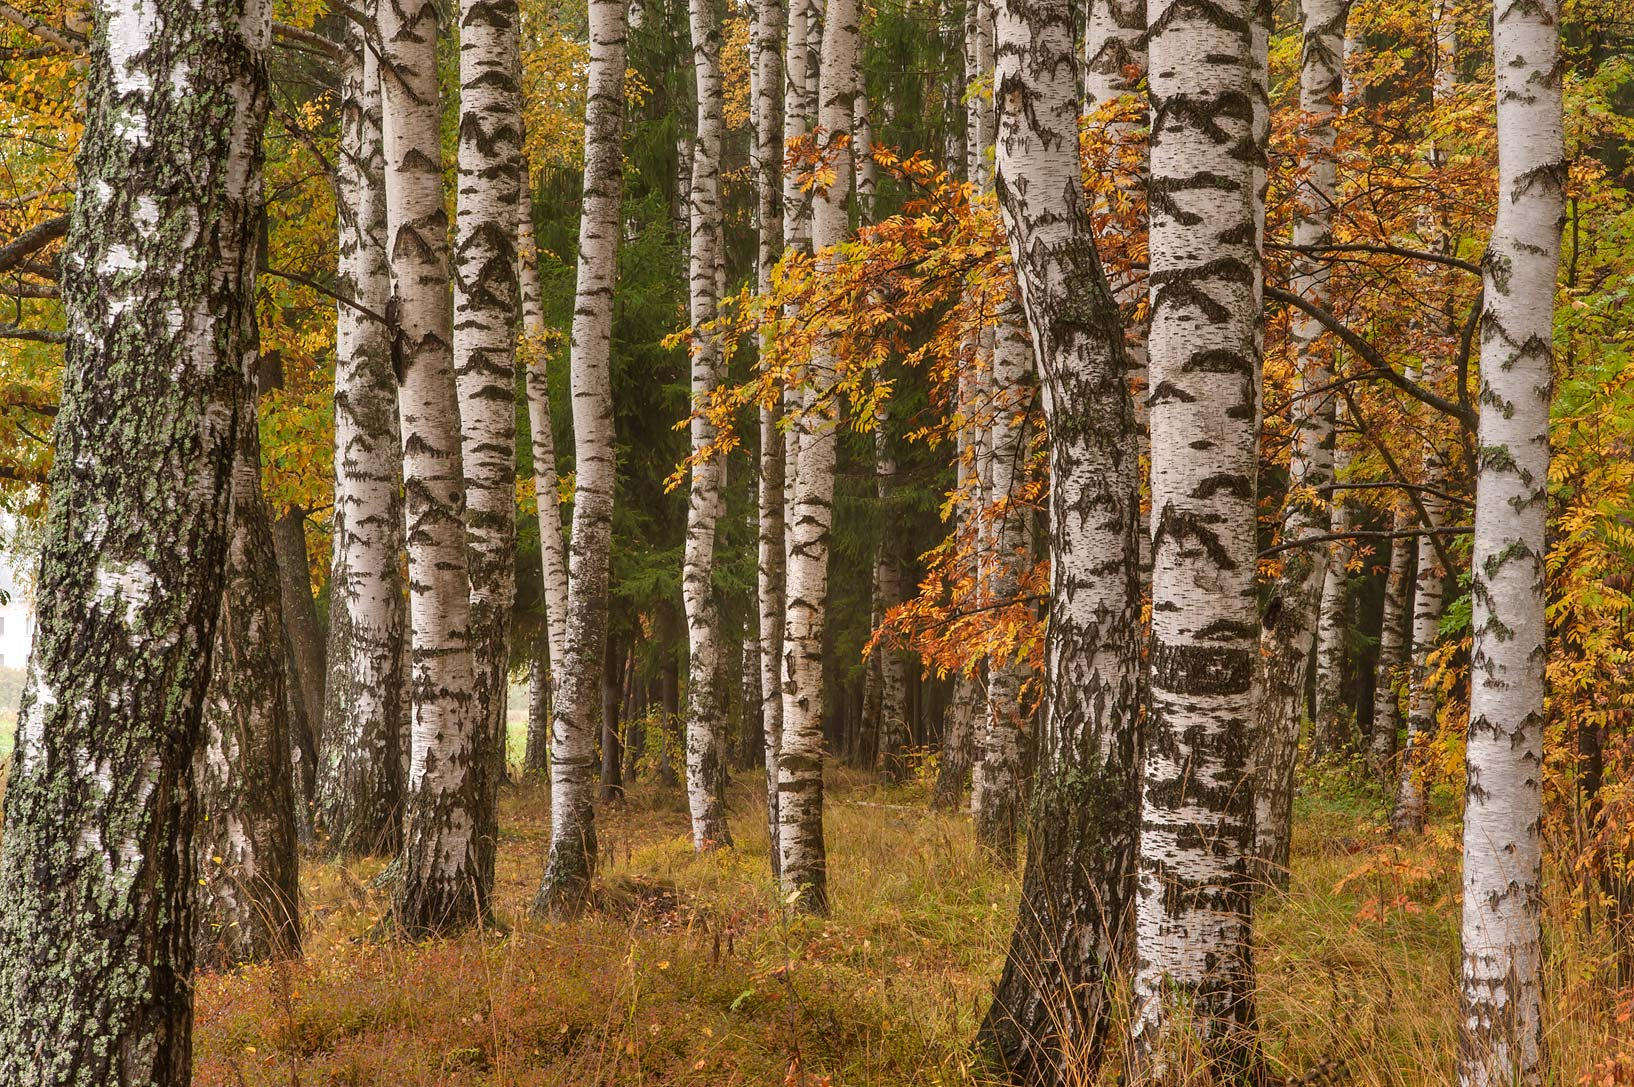 Birch trees near Tyarlevskaya Cutting in Pavlovsk...suburb of St.Petersburg, Russia